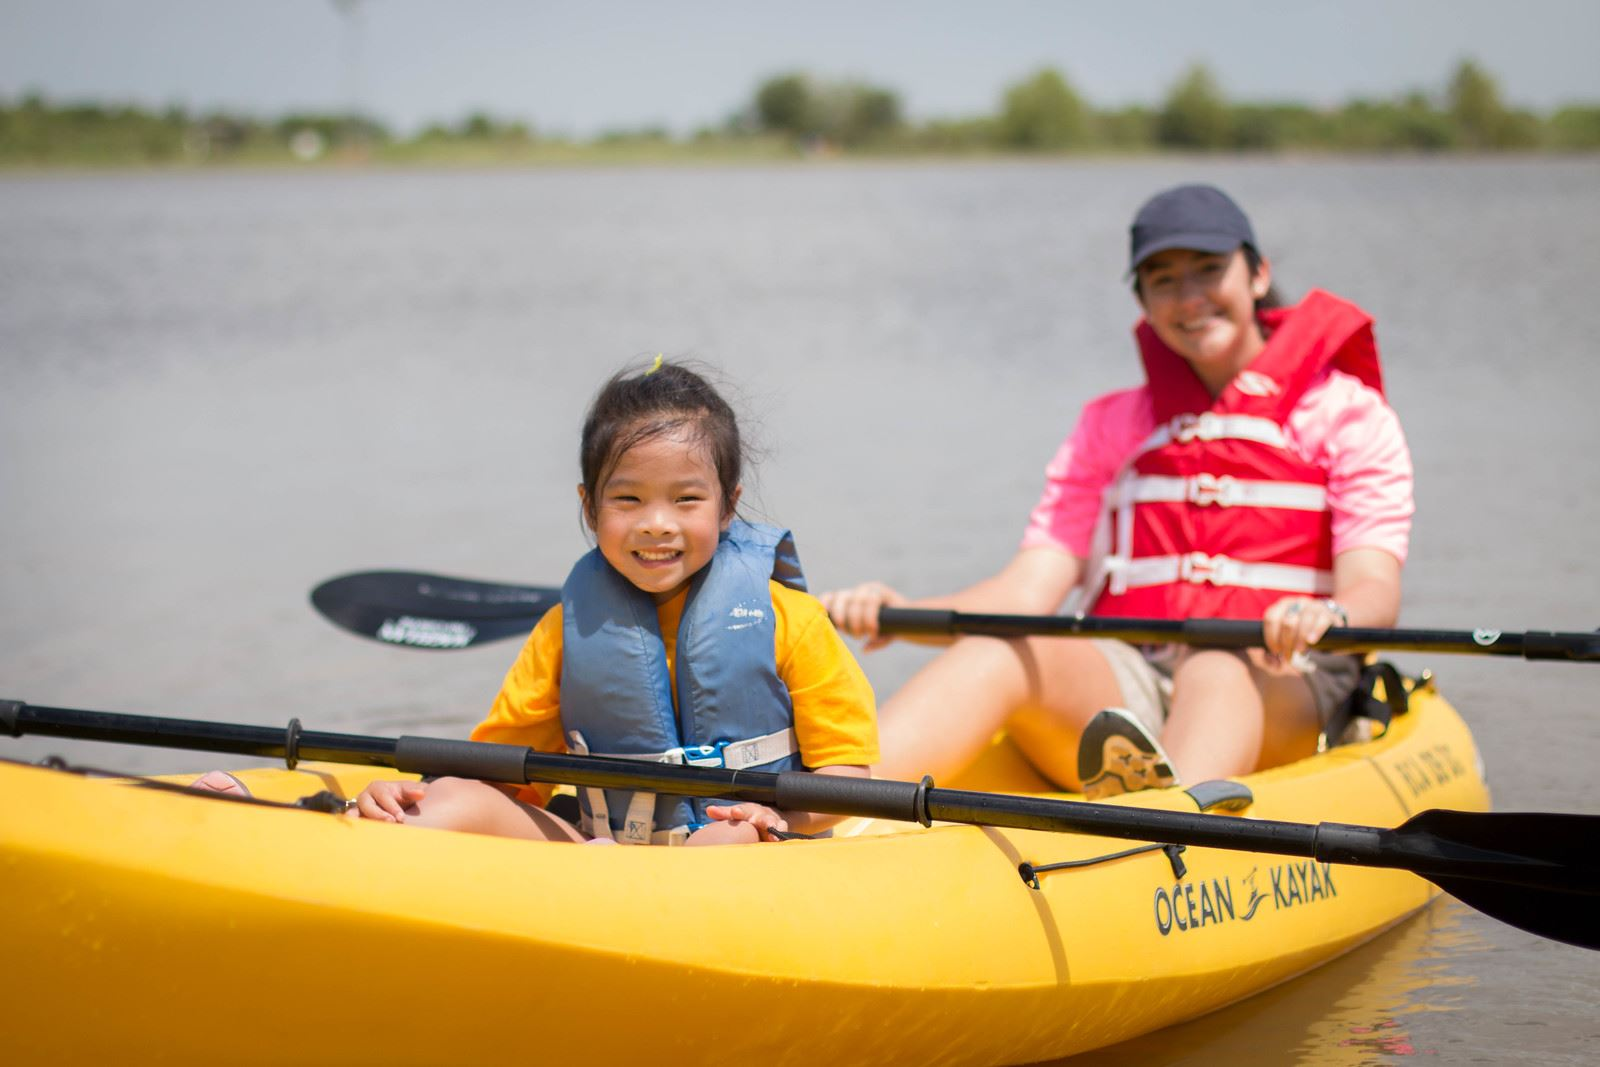 Outdoor Recreation - Kayaking